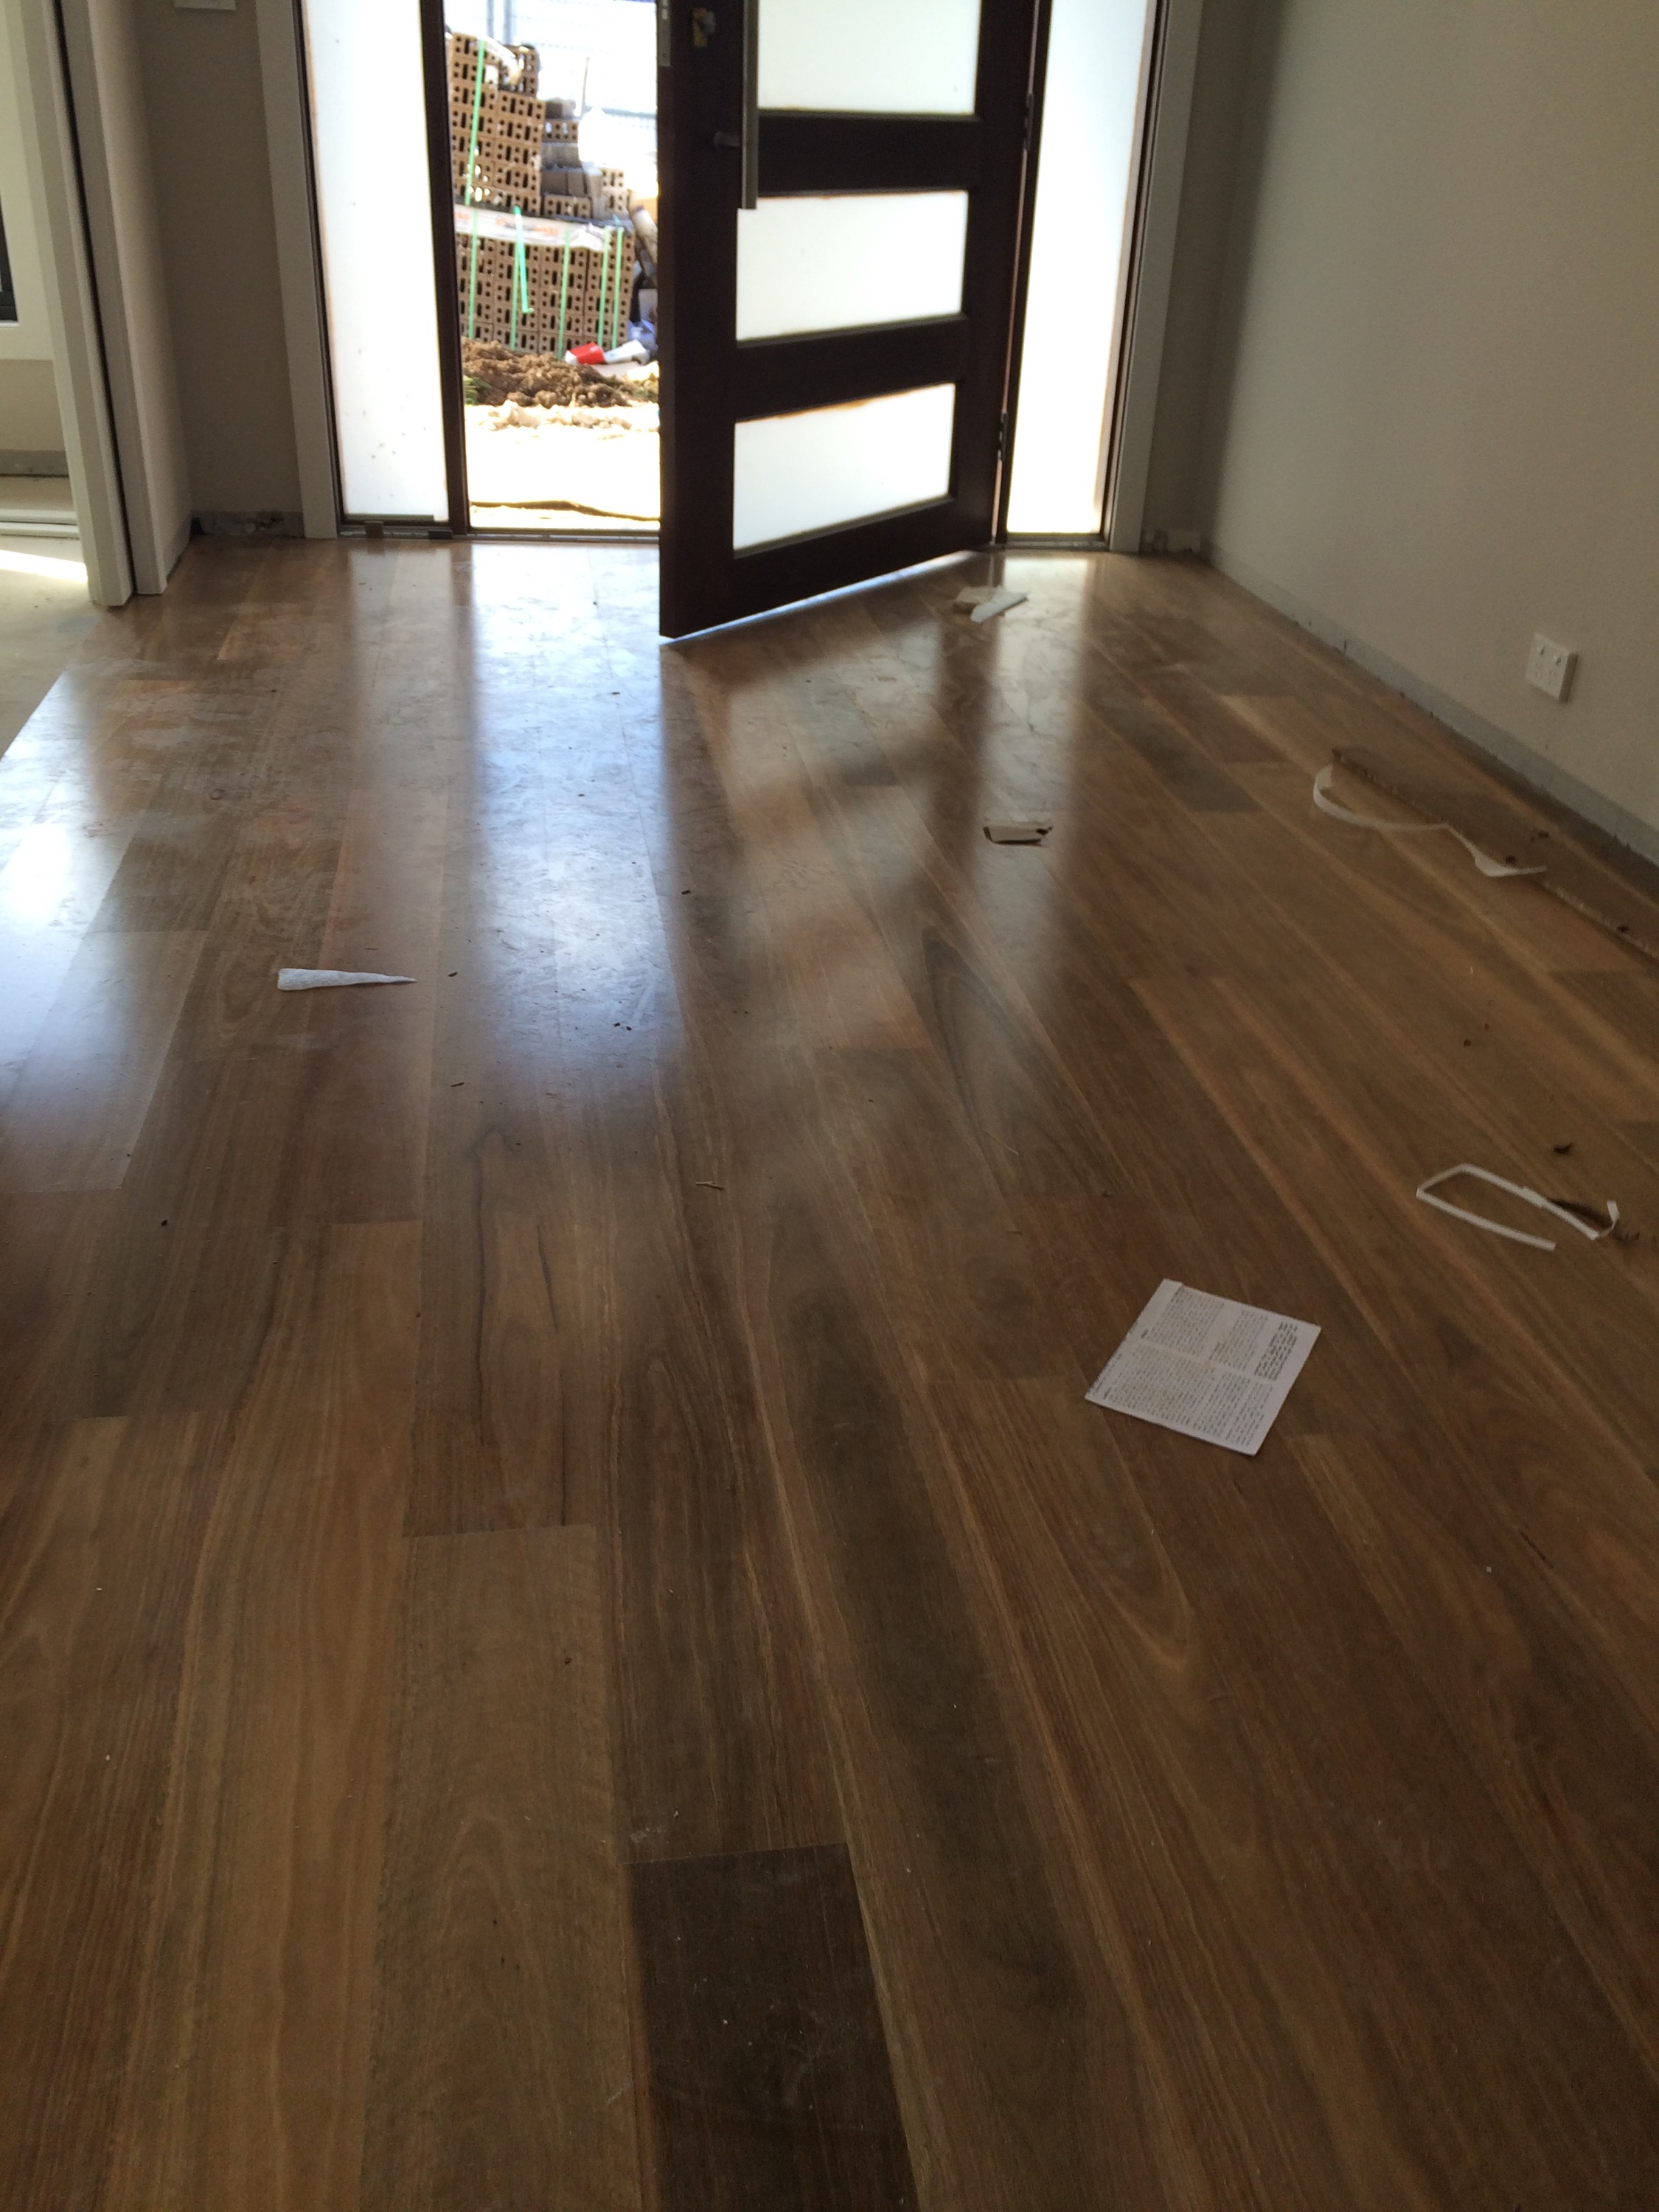 years of resilient pin in engineered experiences goodrich tarkett evorich many with wood from flooring dream floors decks reputable holdings laminate home company a and